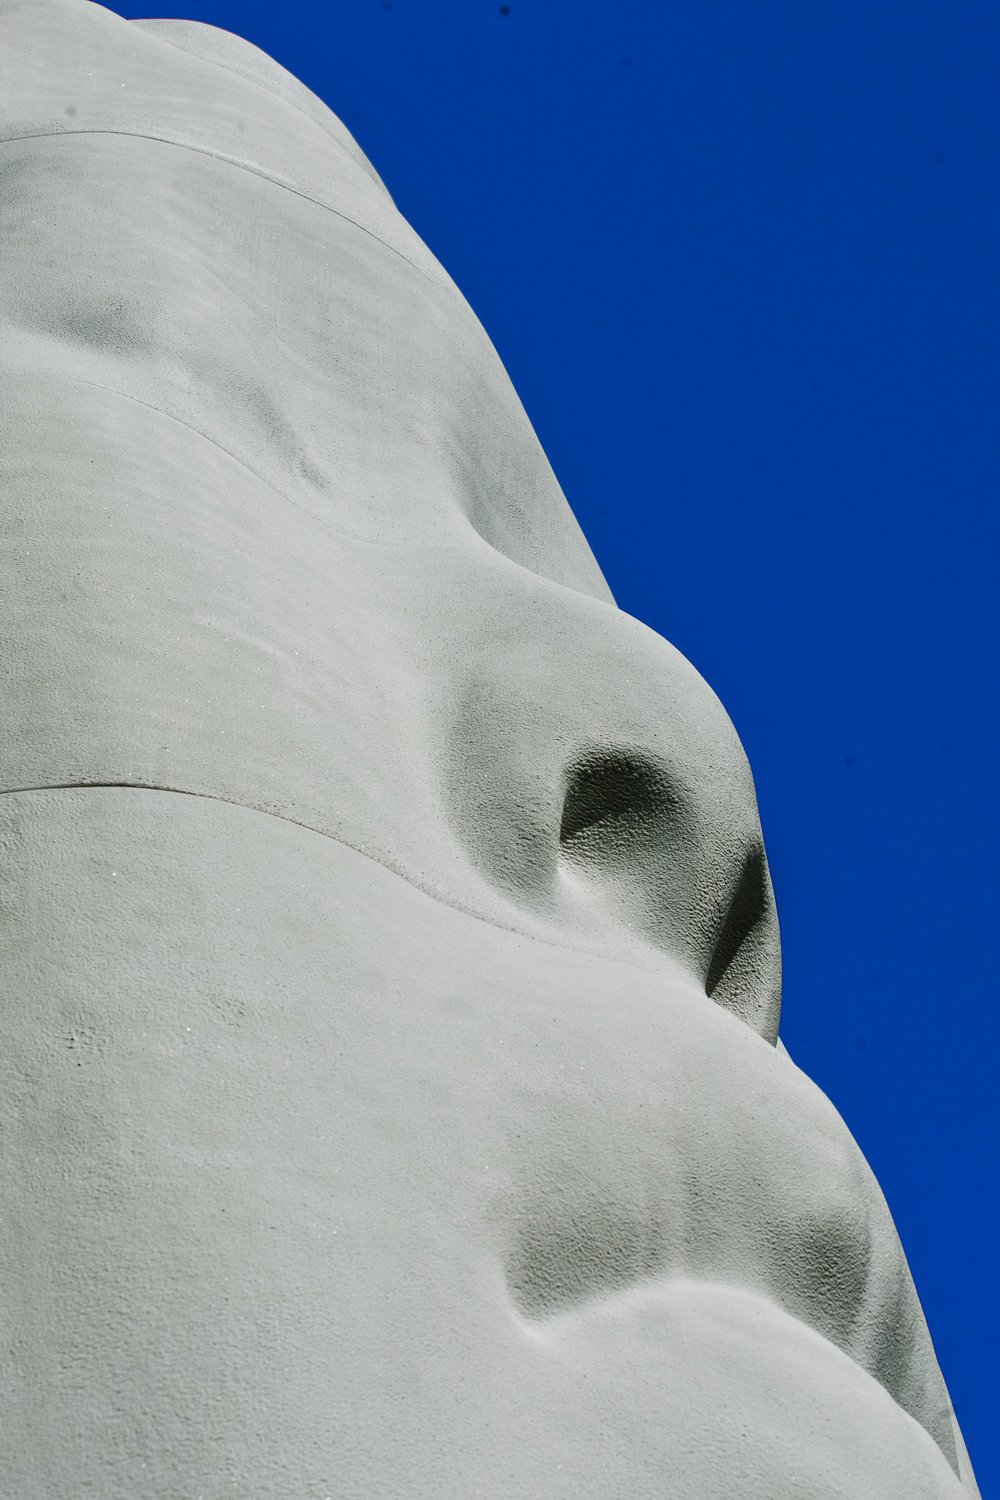 REVE   Buddha's profile on a profound blue sky